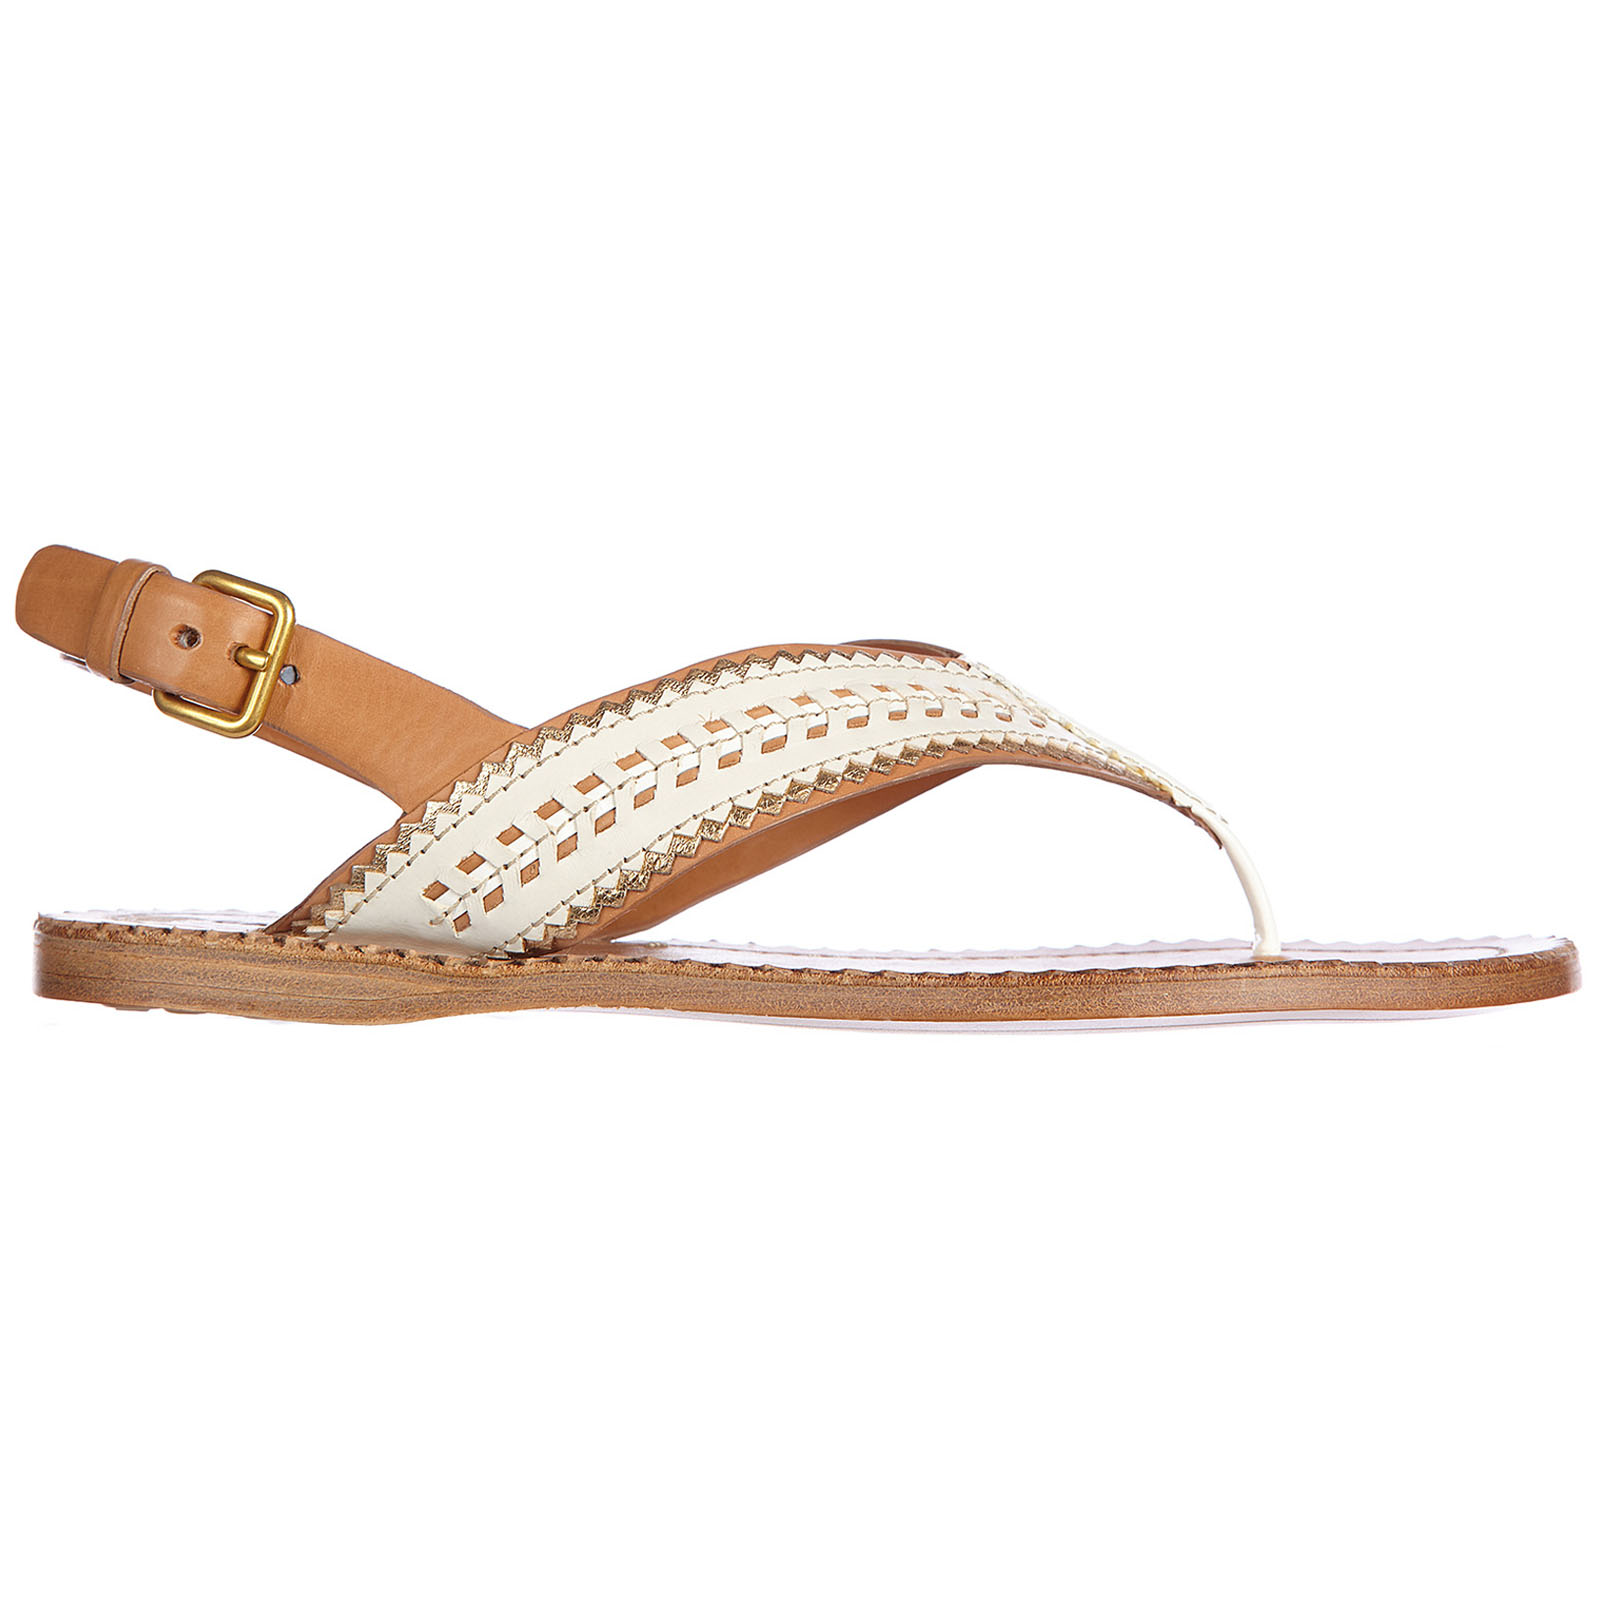 Women's leather flip flops sandals nature